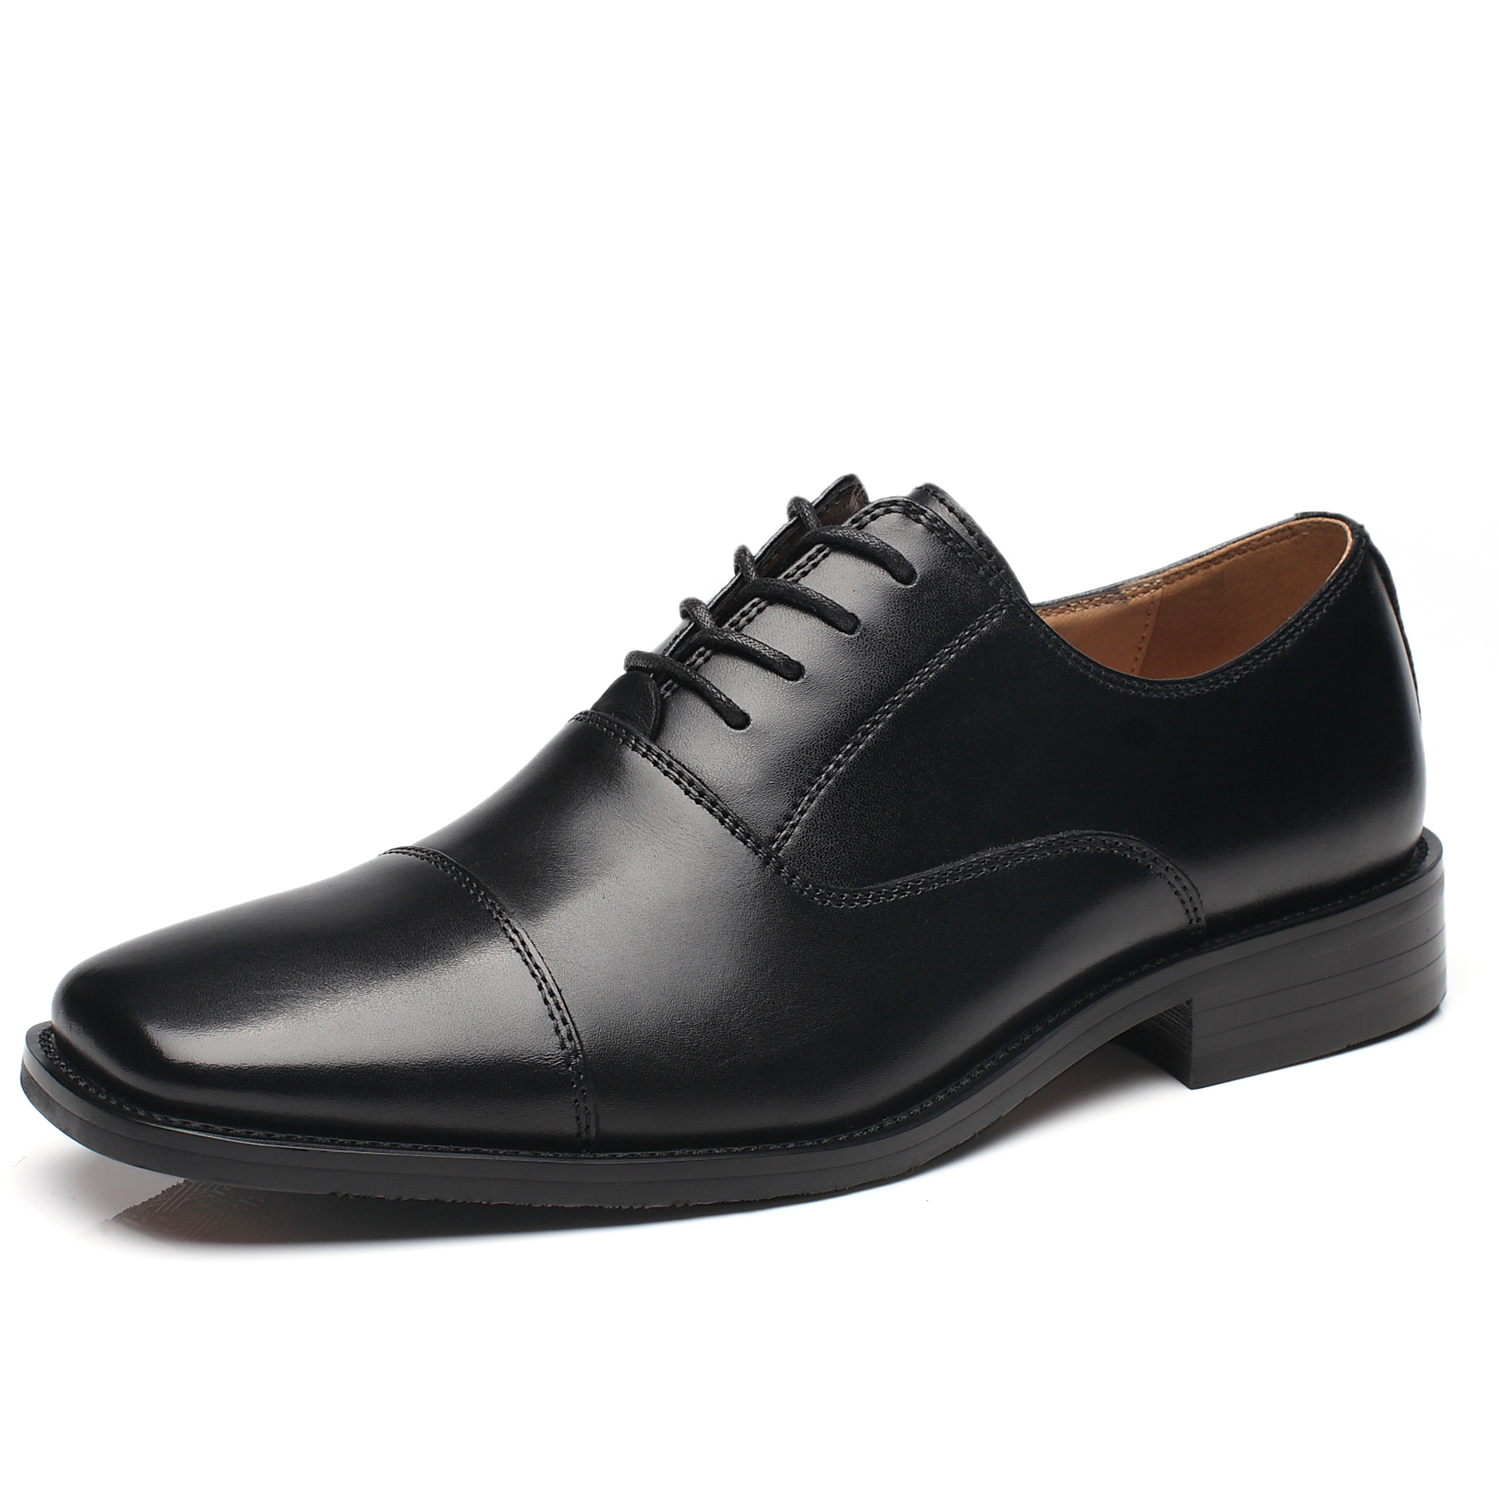 NXT New YORK Men Dress Shoes Geniune Leather Oxford Shoes for Men Zapatos de Hombre Loafer Comfortable Classic Modern... by